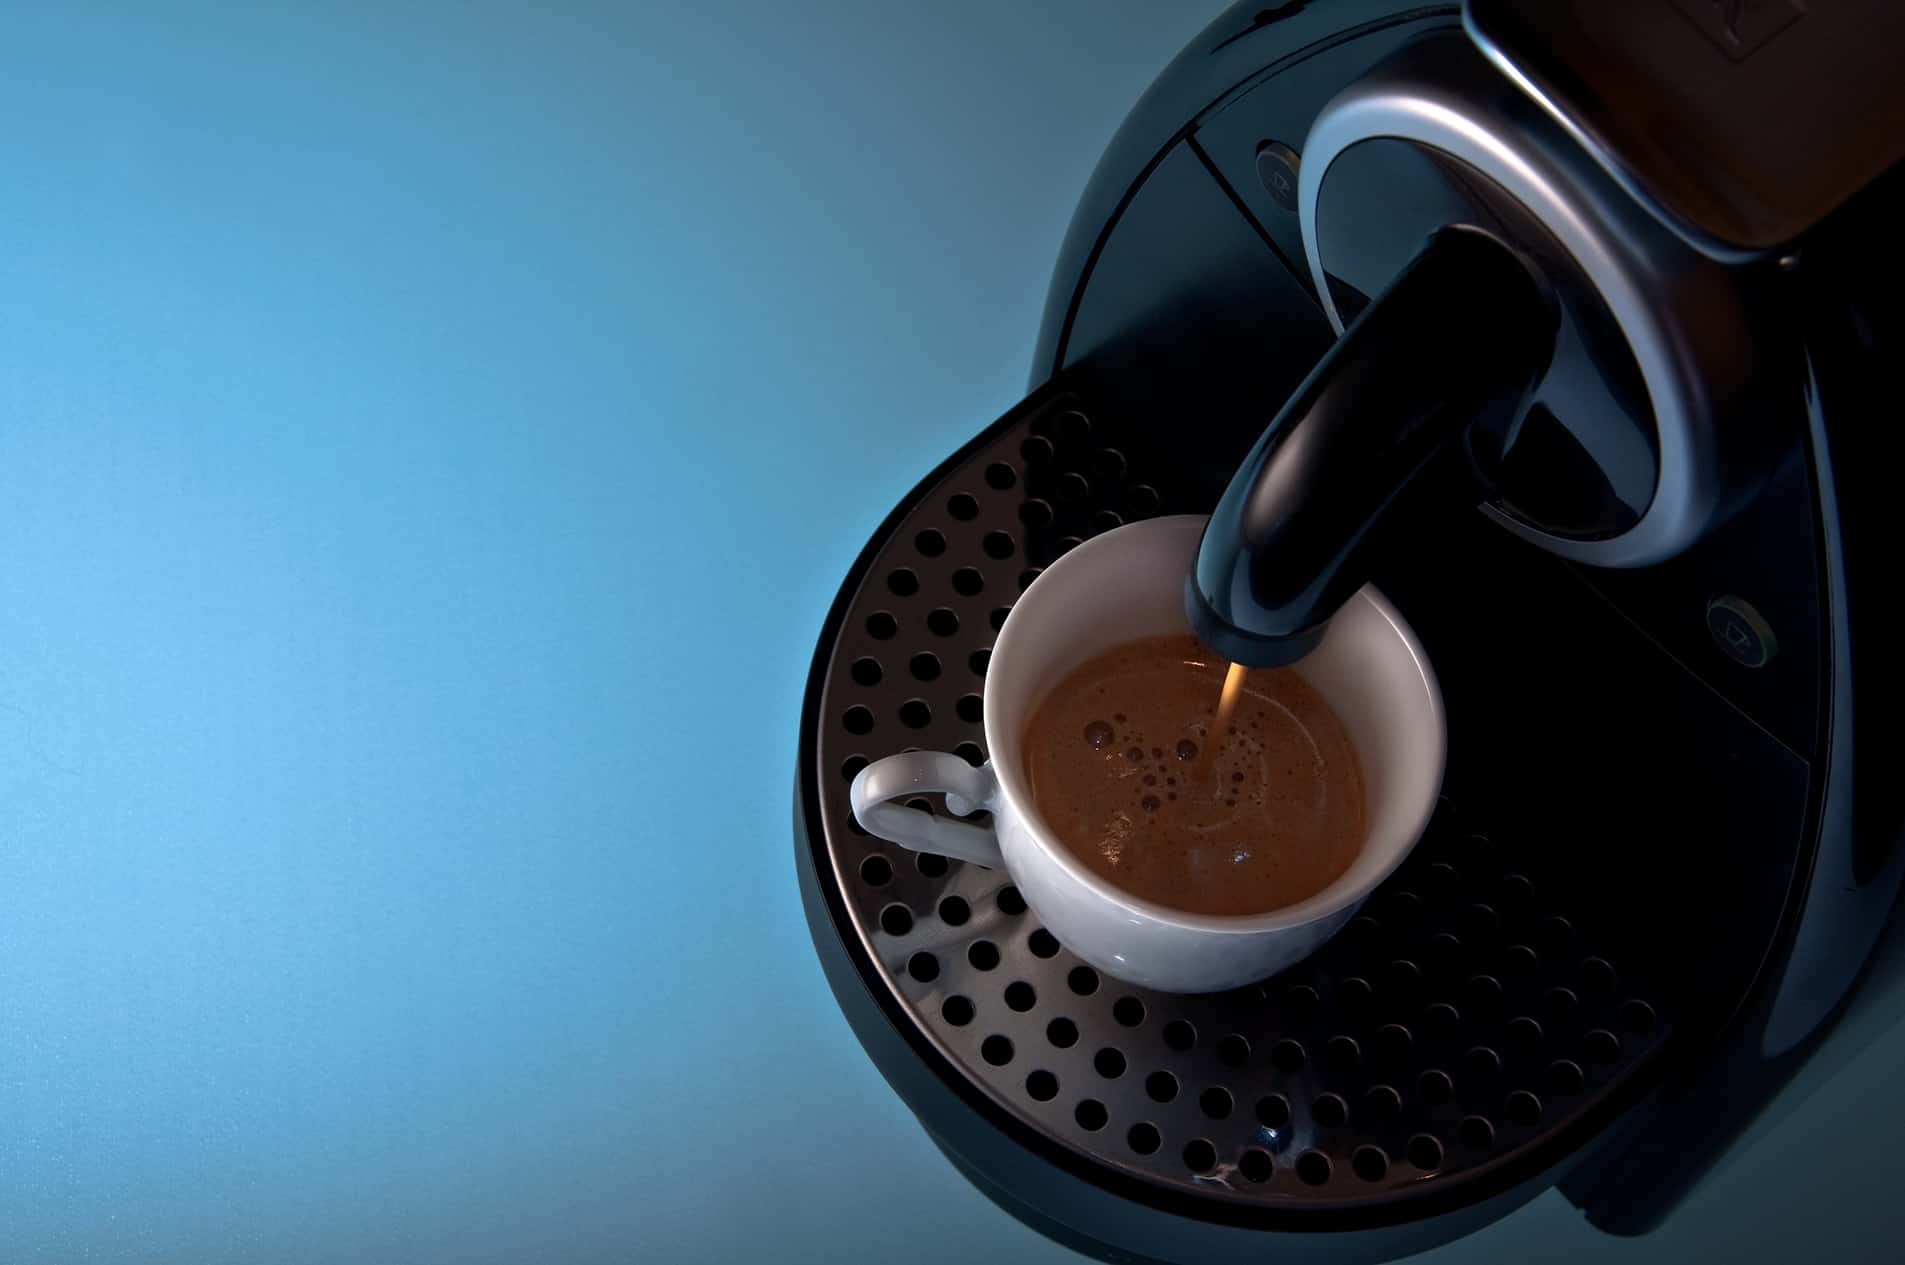 Best Coffee Maker Using Pods : Best Single Serve Coffee Maker (July. 2017) - Reviews & Buyer's Guide